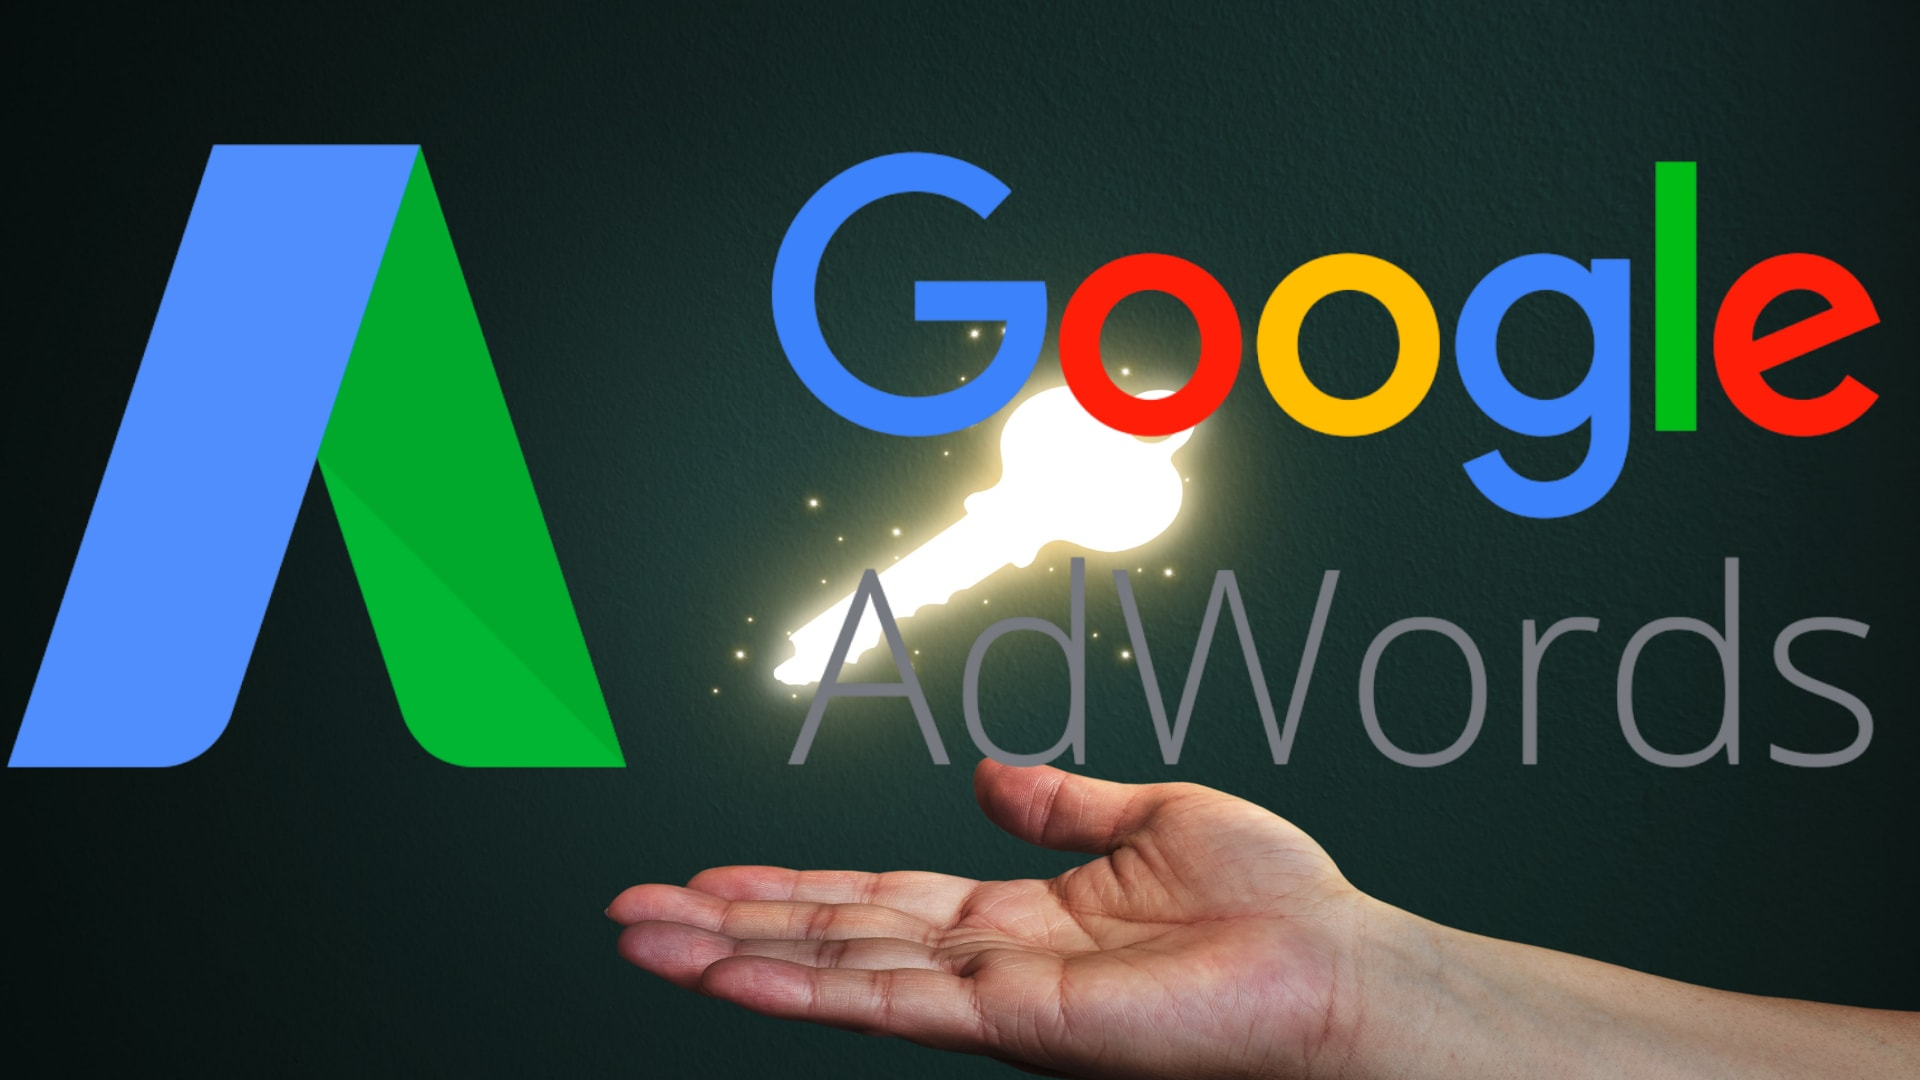 google adwords - 10 Legit Ways to Make Money Online With Google